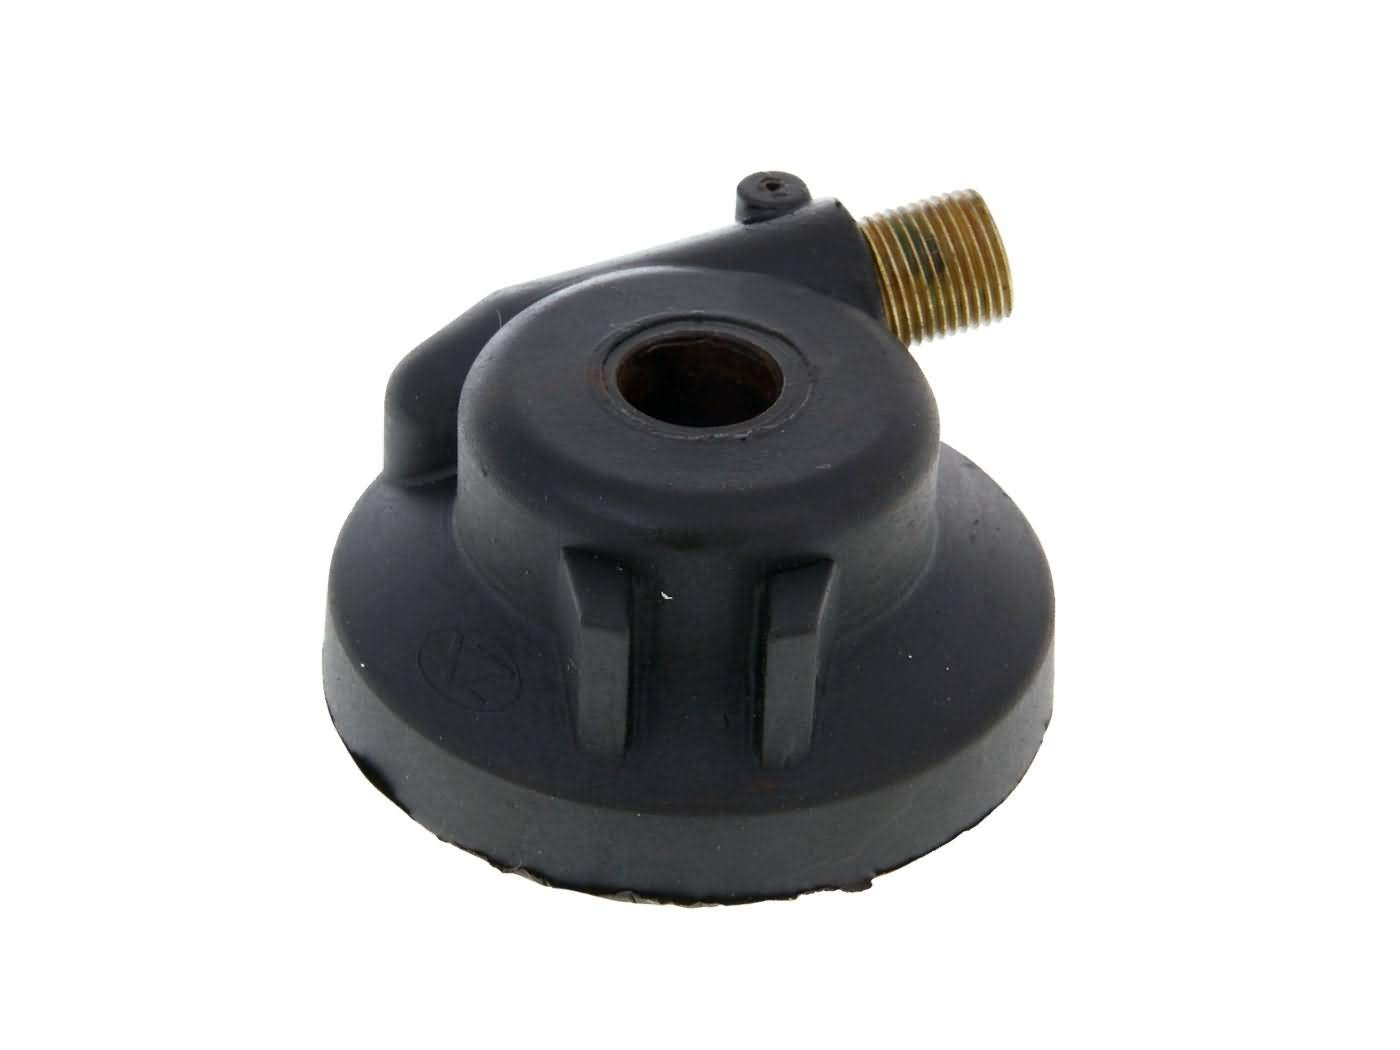 Speed Snail GY6, Retainer Nut, Square Drive, D = 29mm